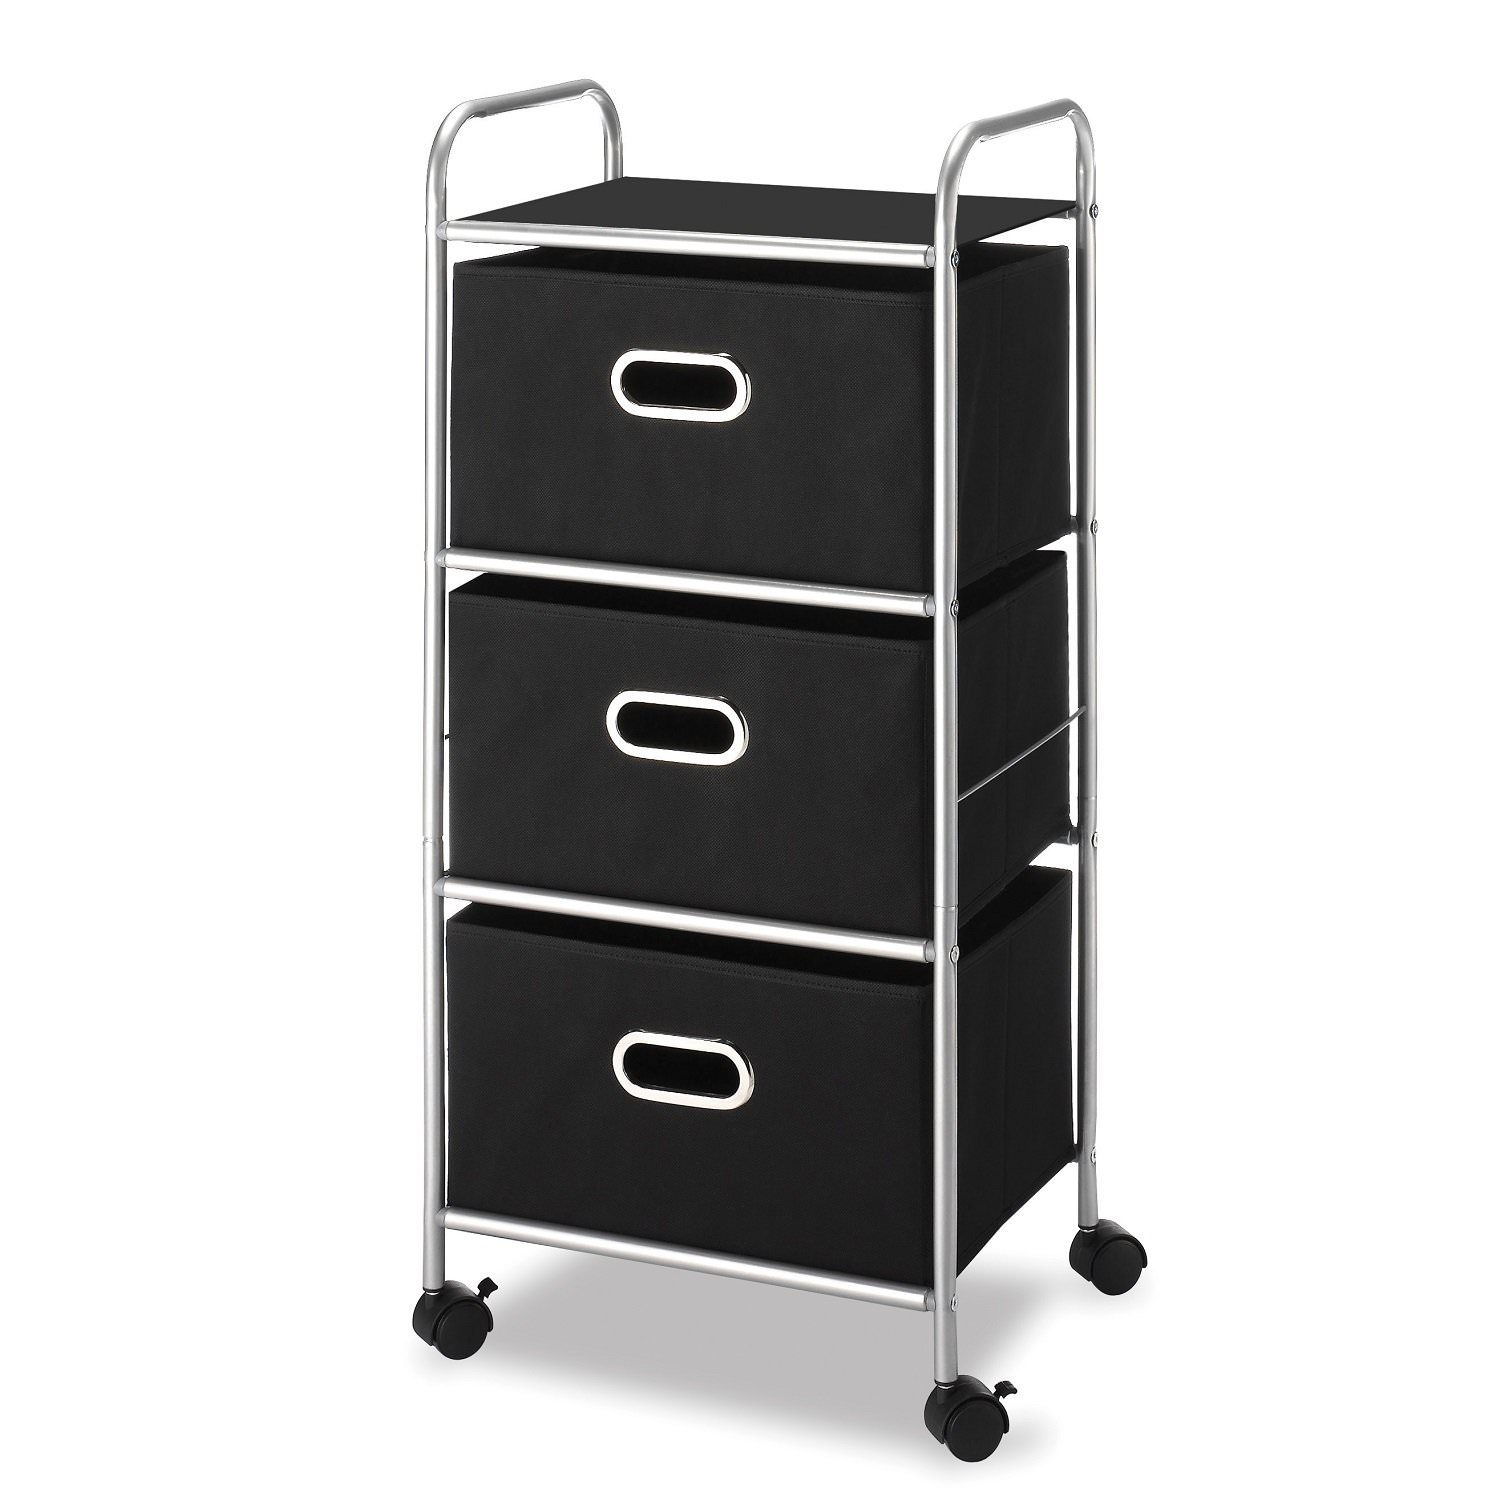 Whitmor 3 Drawer Chest Cart Black & Silver by Whitmor